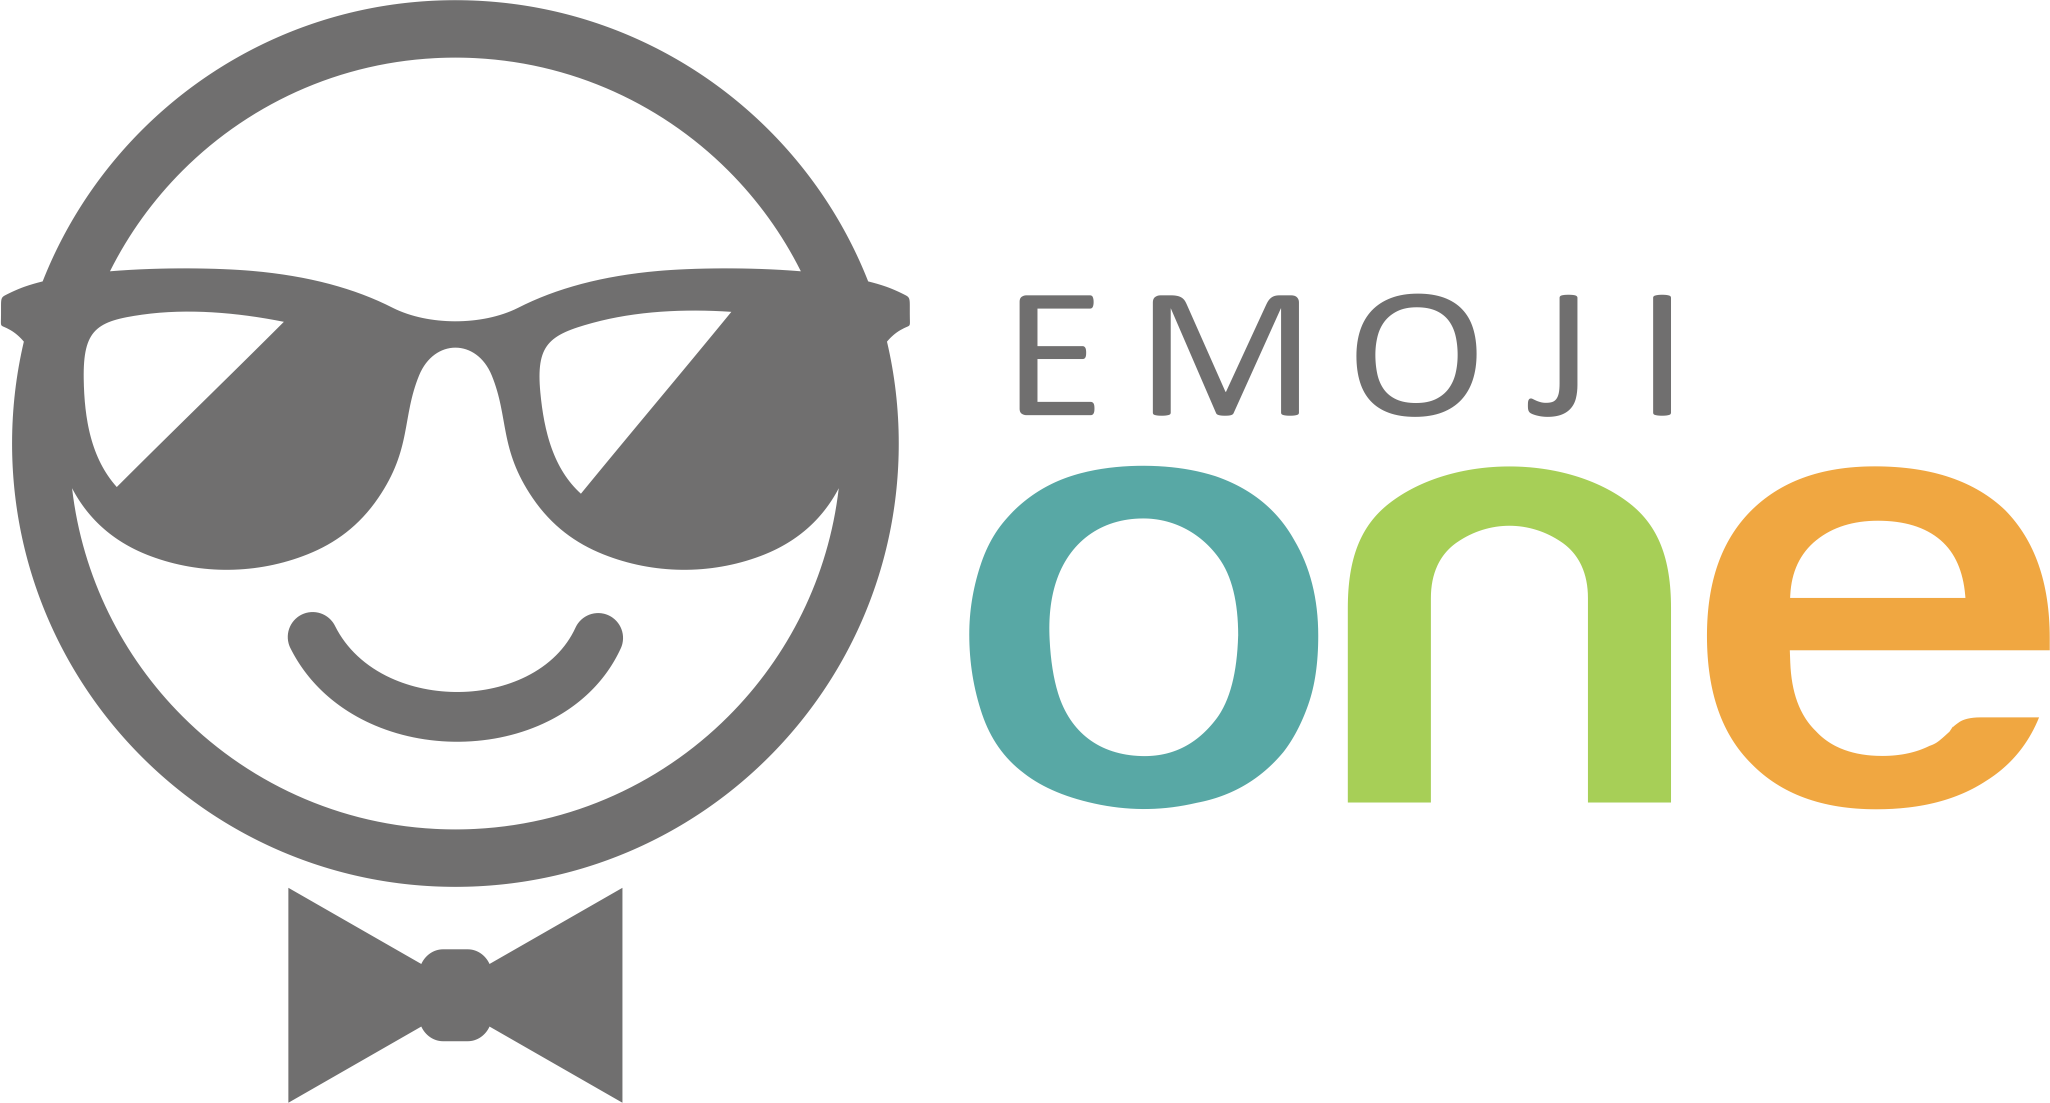 Illustrate the best smiley for Emoji One's new logo!